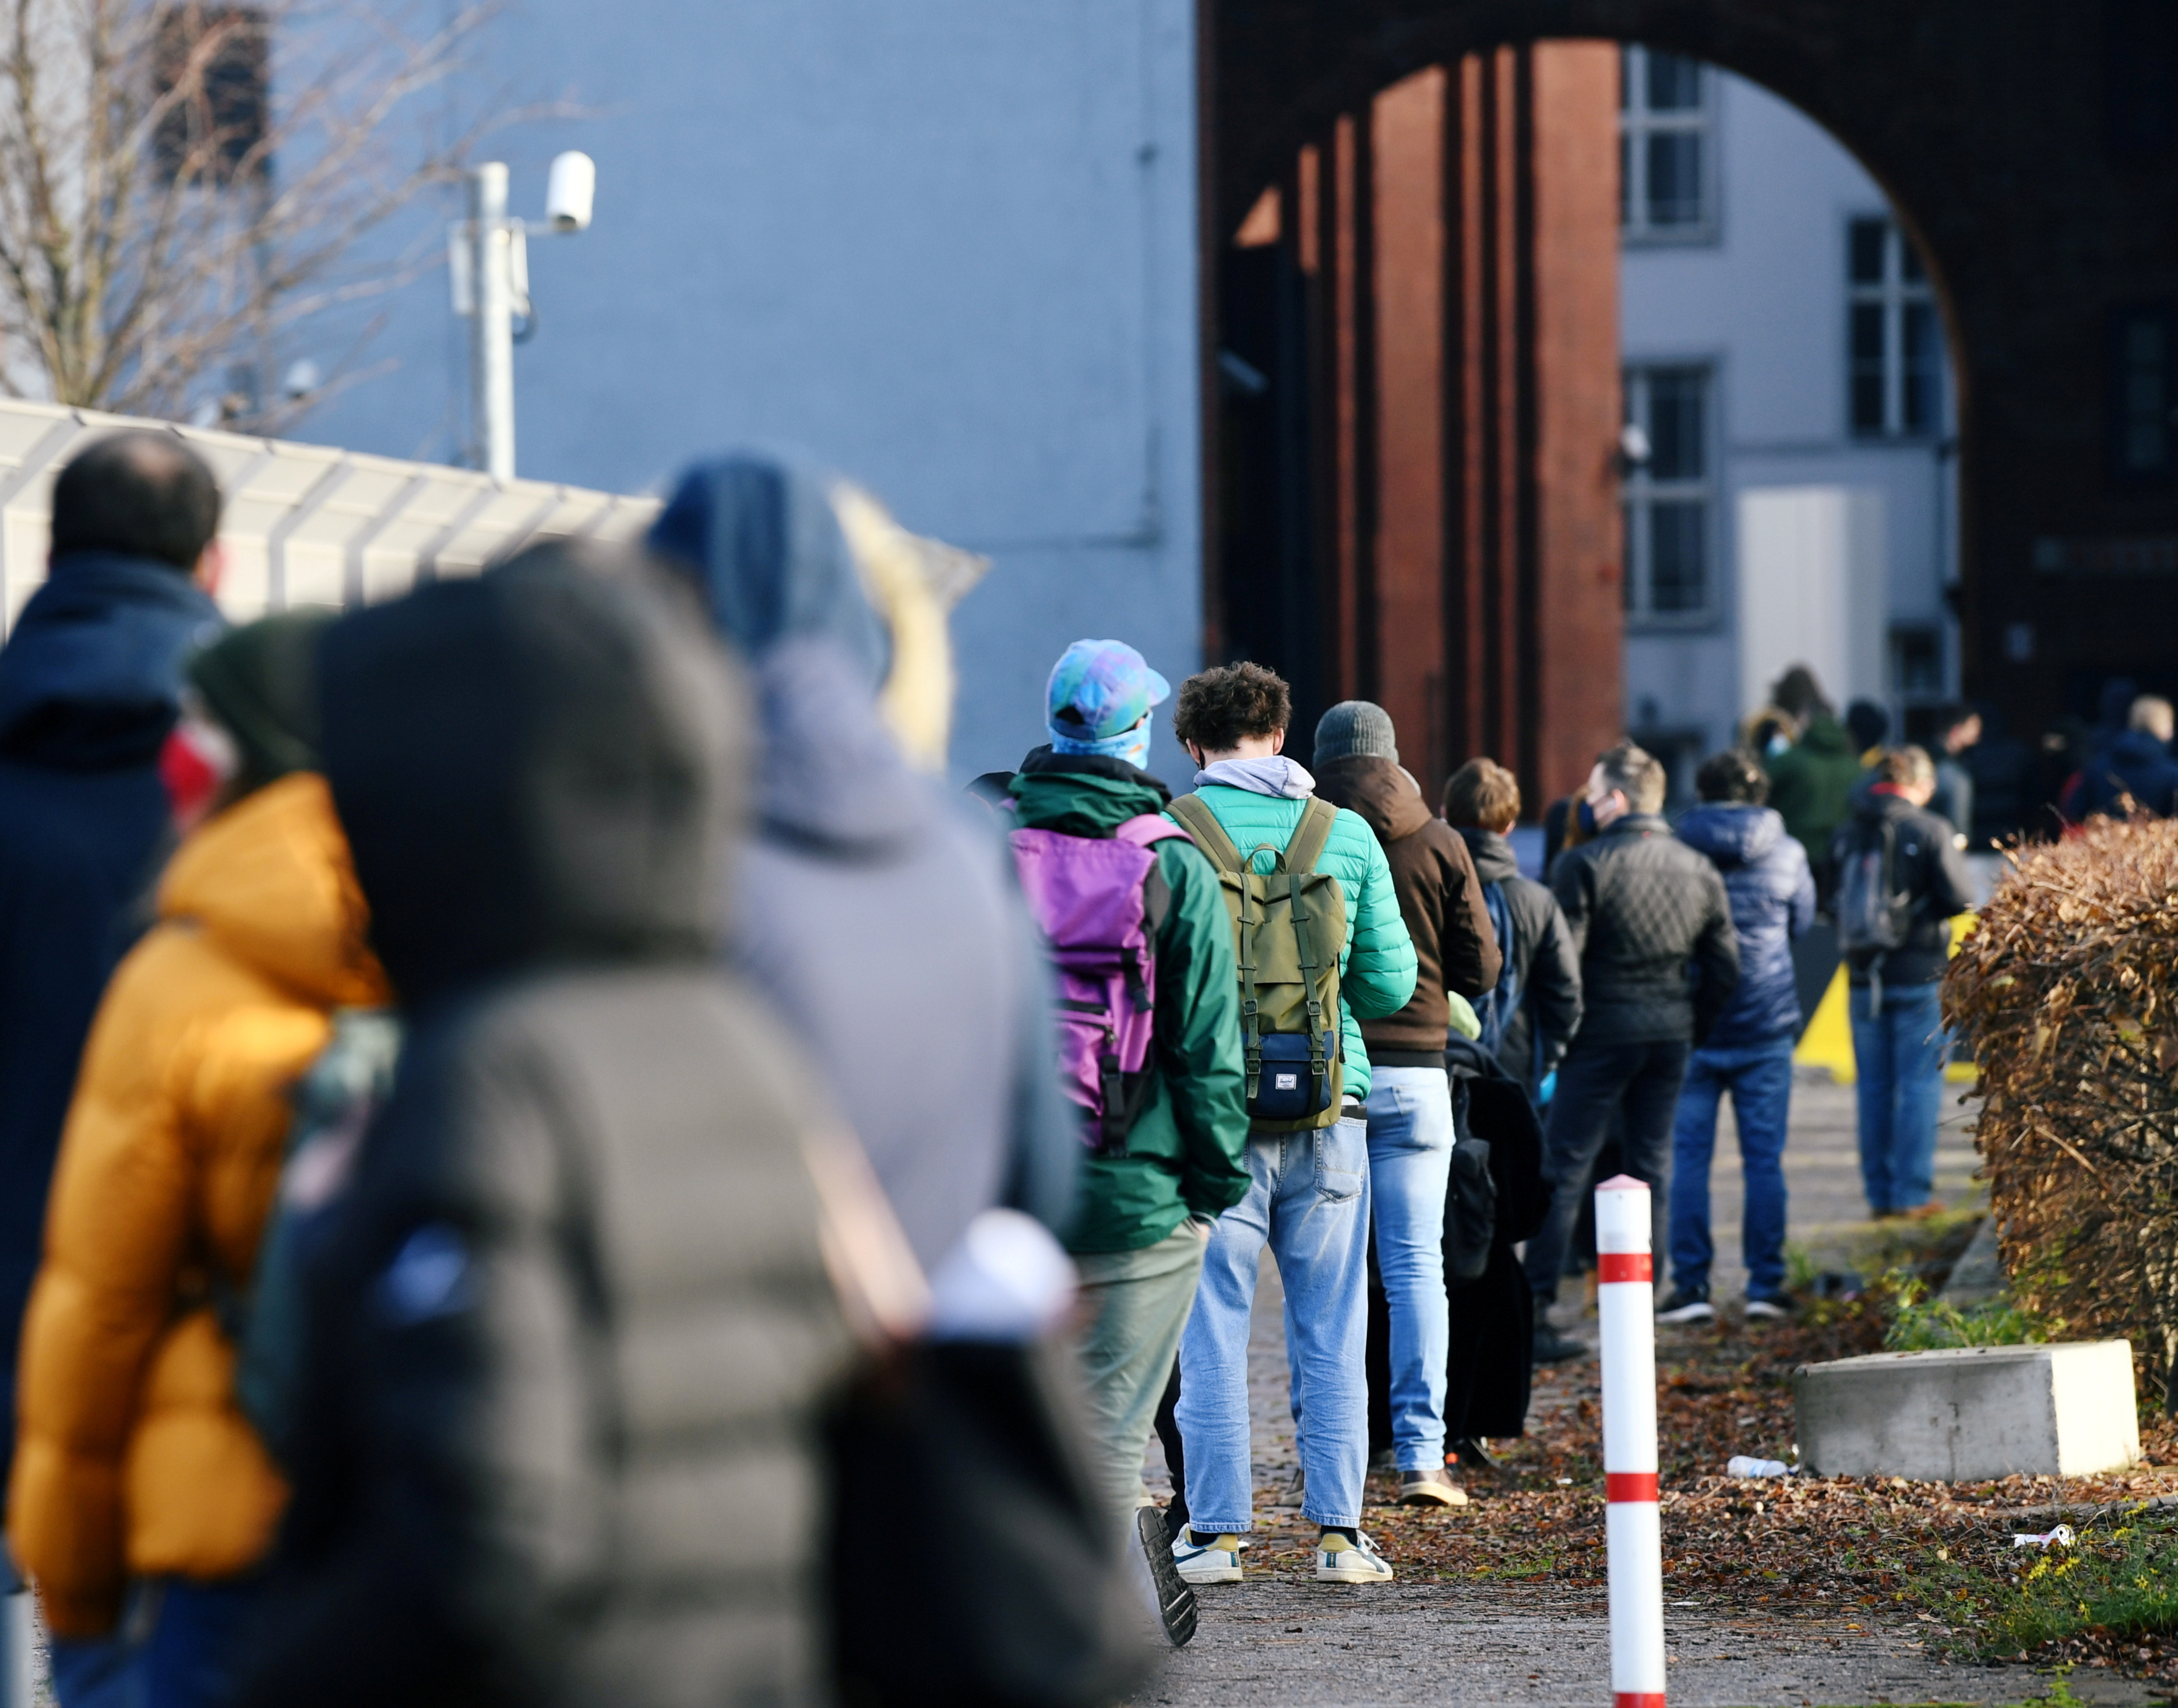 People queue at a walk-in COVID-19 testing centre at Wilhelmstrasse, amid the coronavirus disease (COVID-19) pandemic, in Berlin, Germany December 18, 2020.  REUTERS/Annegret Hilse/File Photo